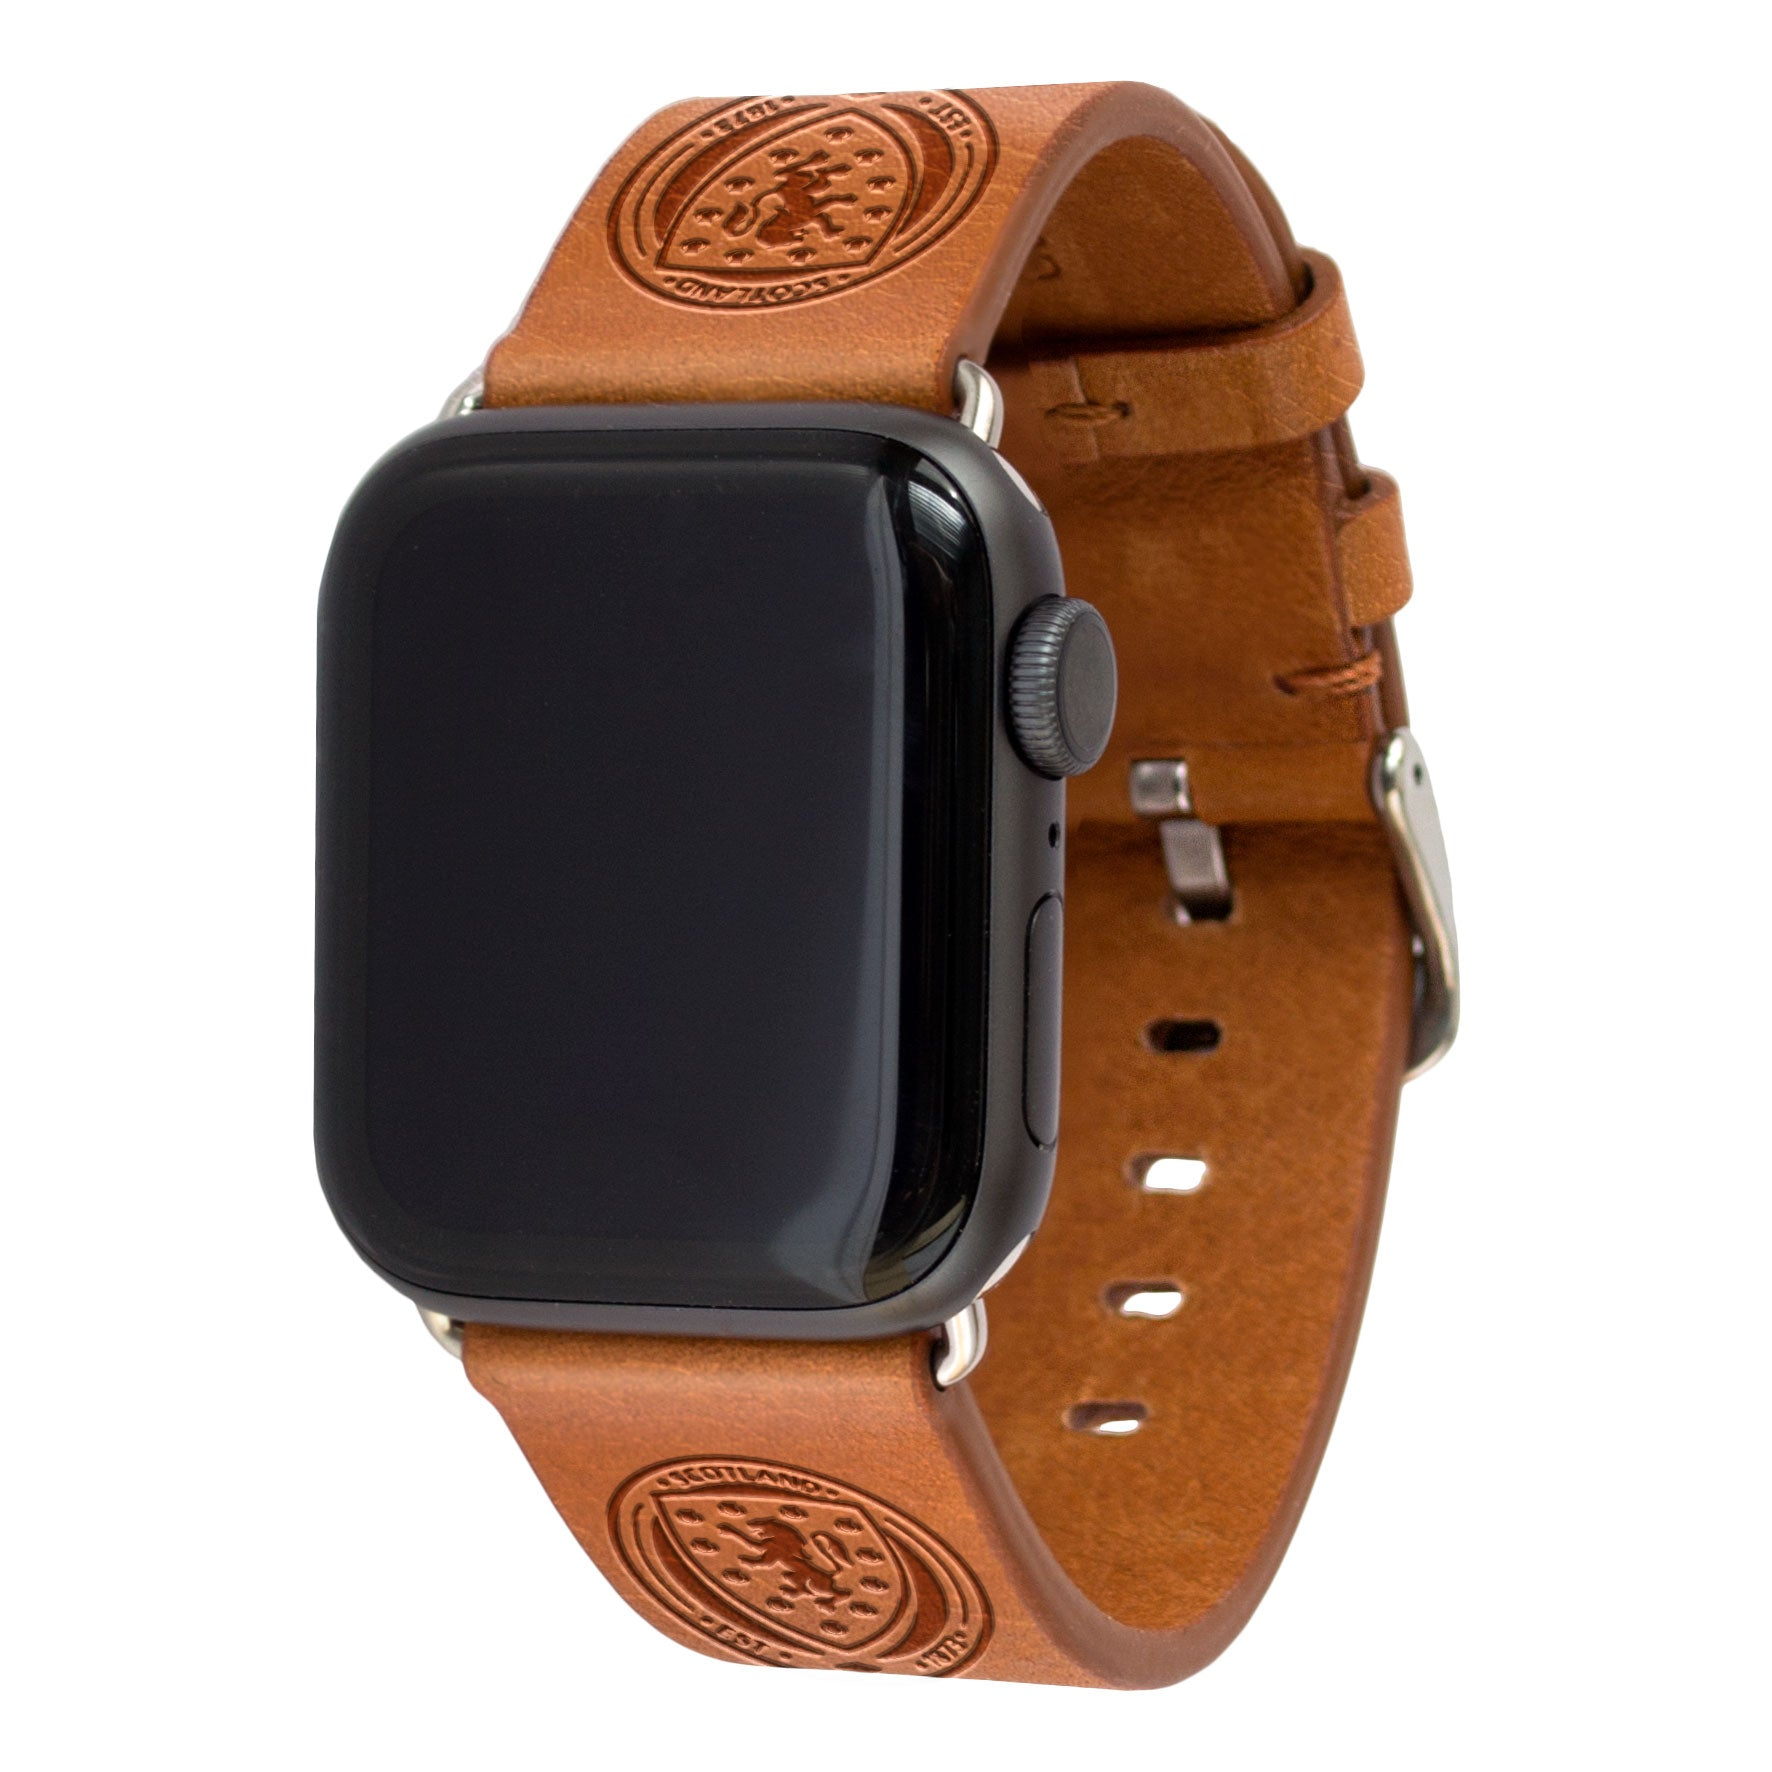 Scotland Leather Apple Watch Band - AffinityBands